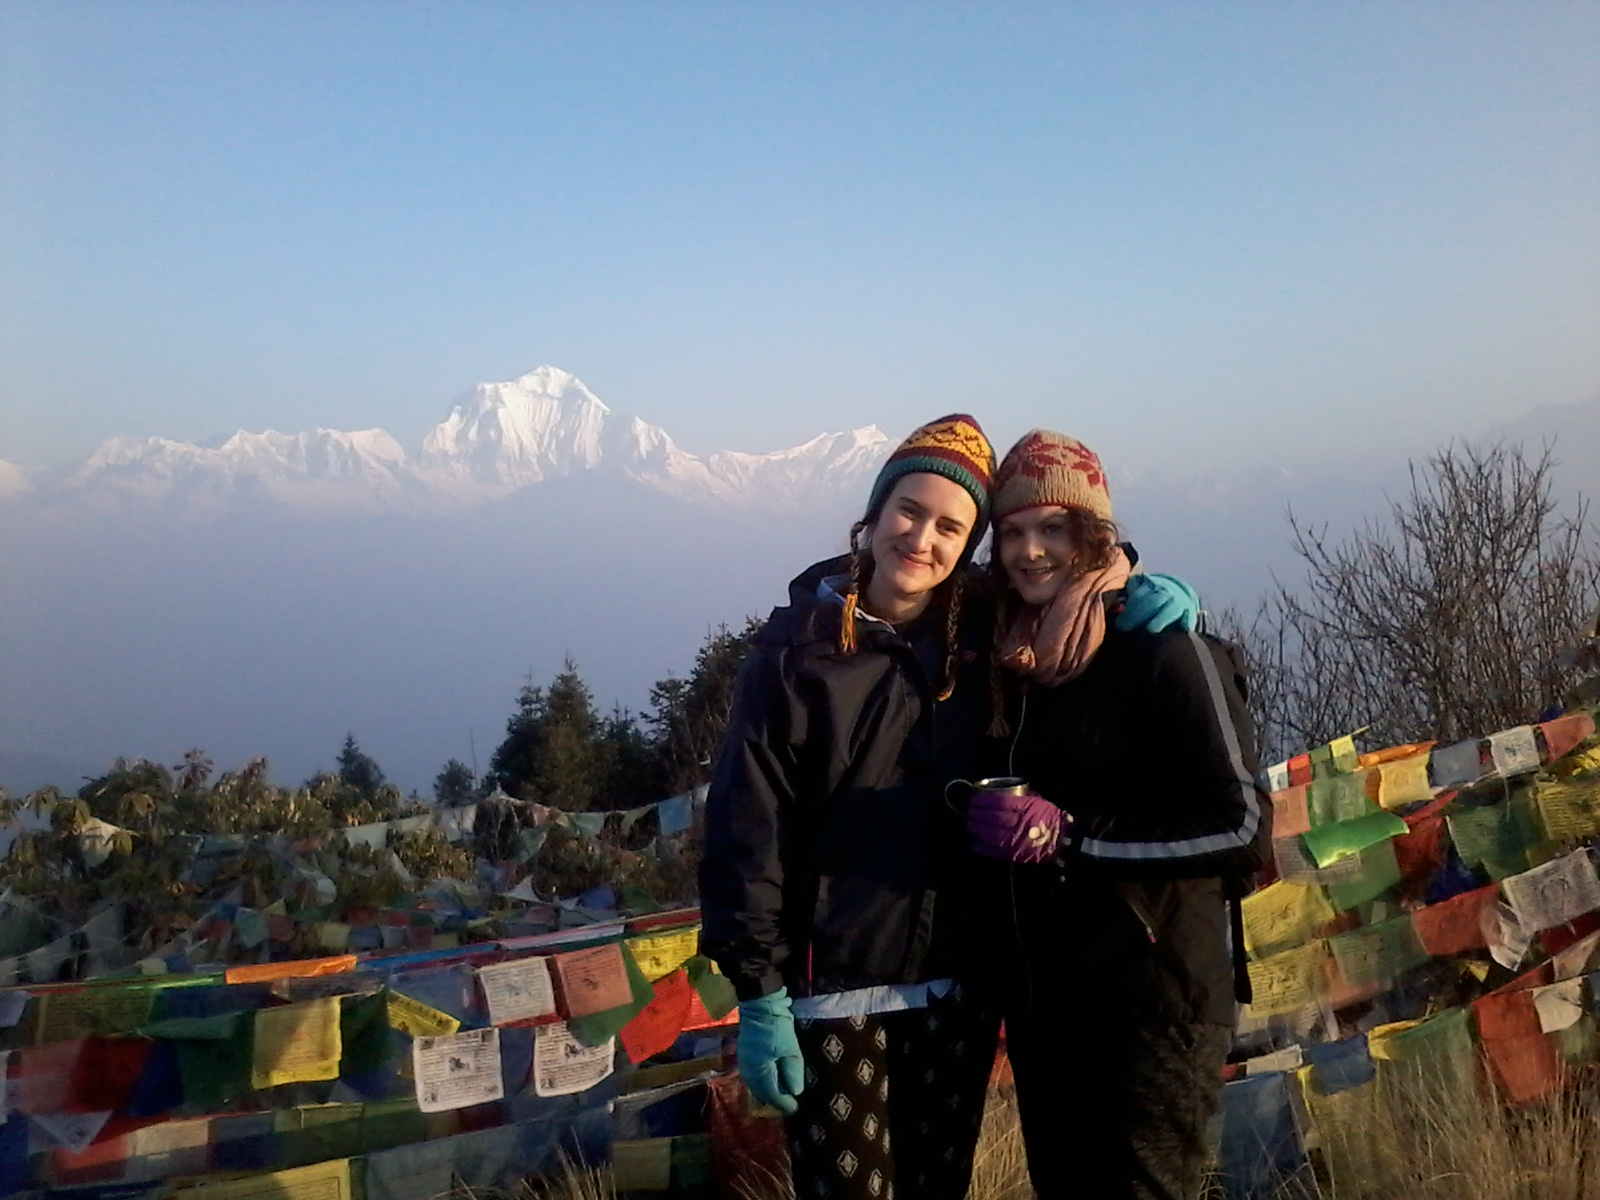 twin-kingdoms-tour-journey-across-nepal-and-bhutan